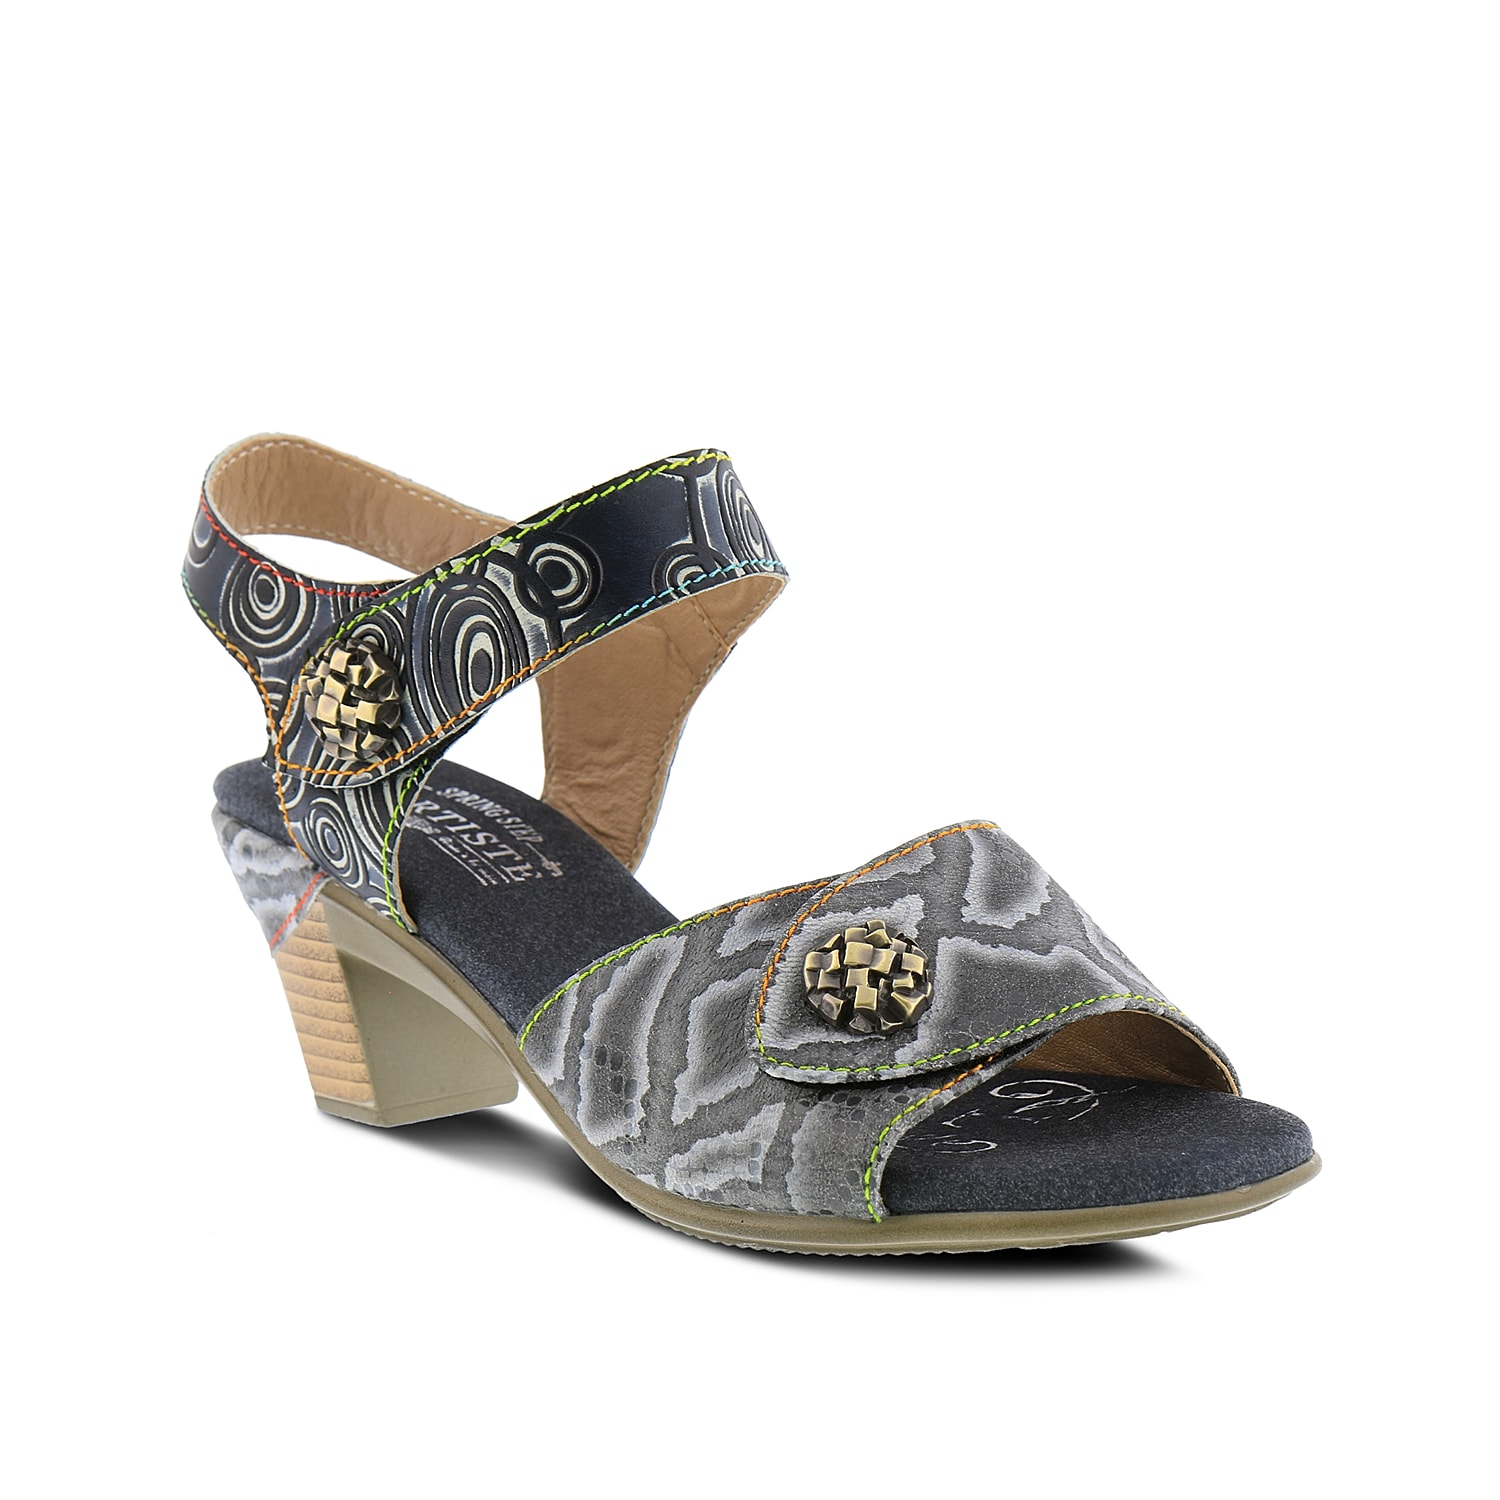 Add a unique finish to any outfit with the Alluroe sandal from L\\\'Artiste by Spring Step. Rainbow stitching, ornamental details, and a hand-painted leather upper set this two-piece apart from the crowd.